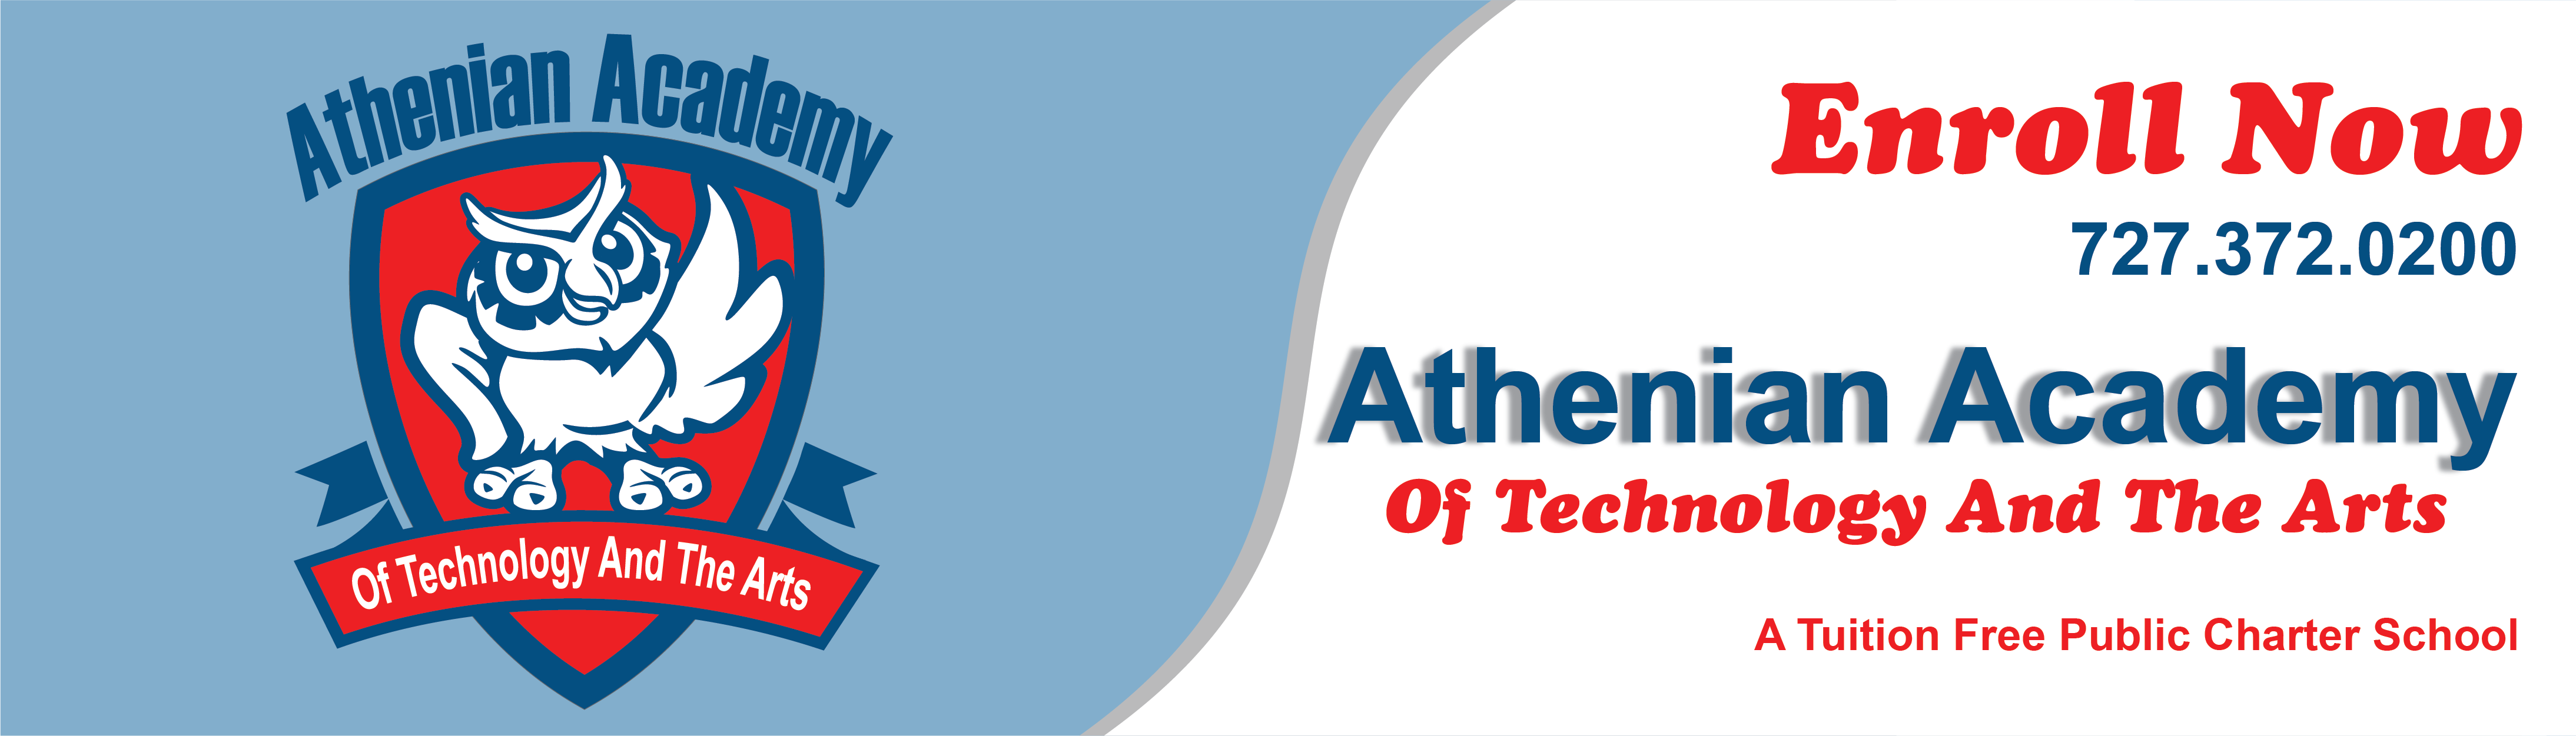 Athenian Academy of Technology and the Arts